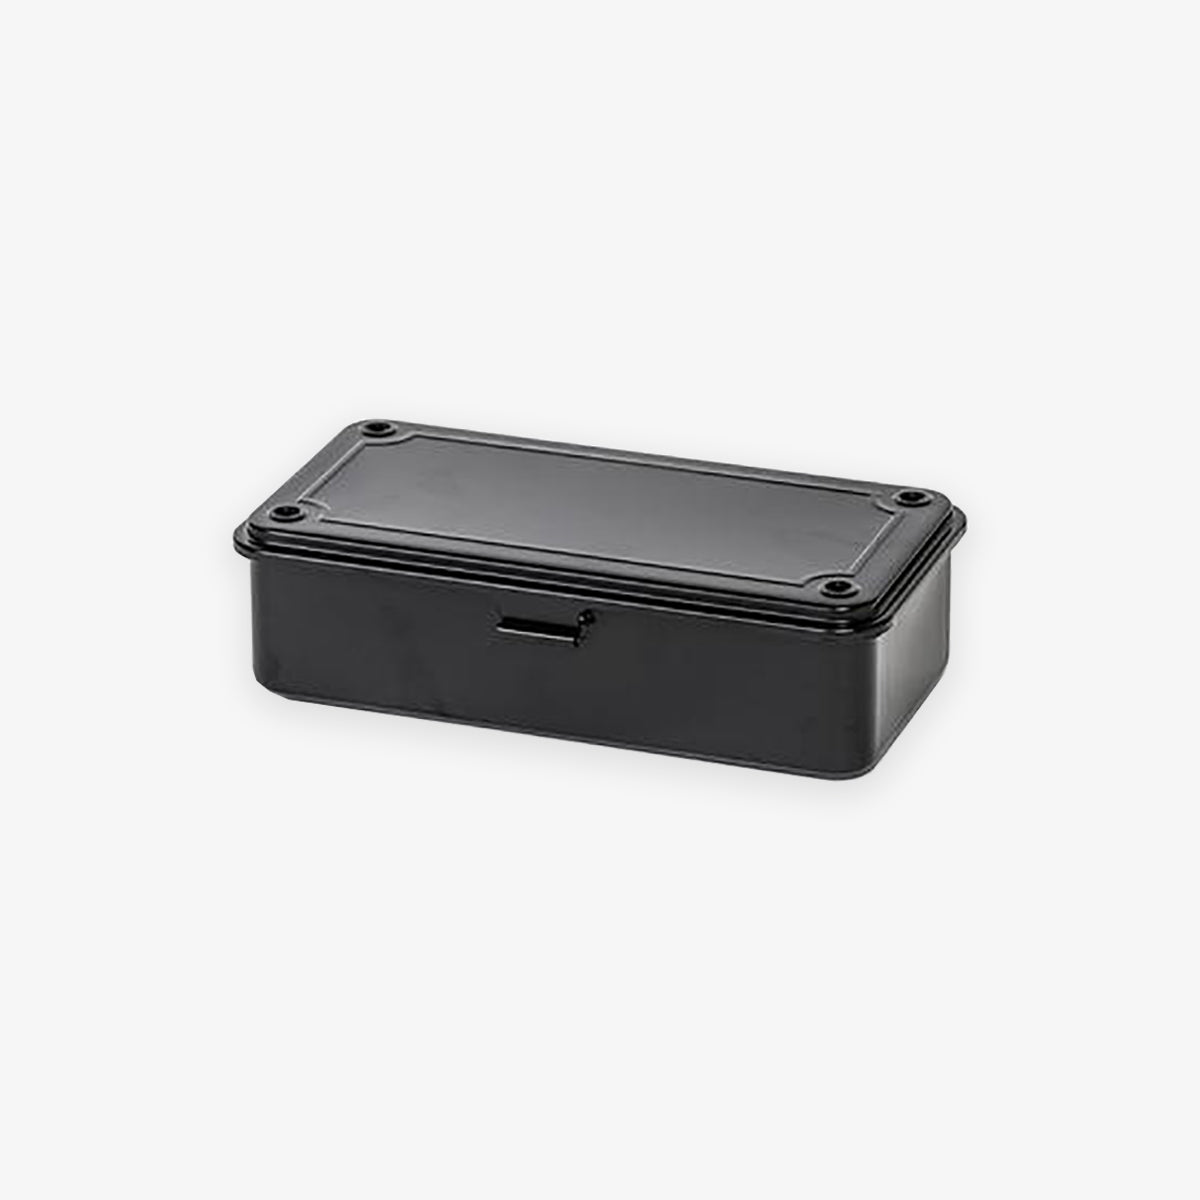 T-190 STEEL TOOL BOX // BLACK